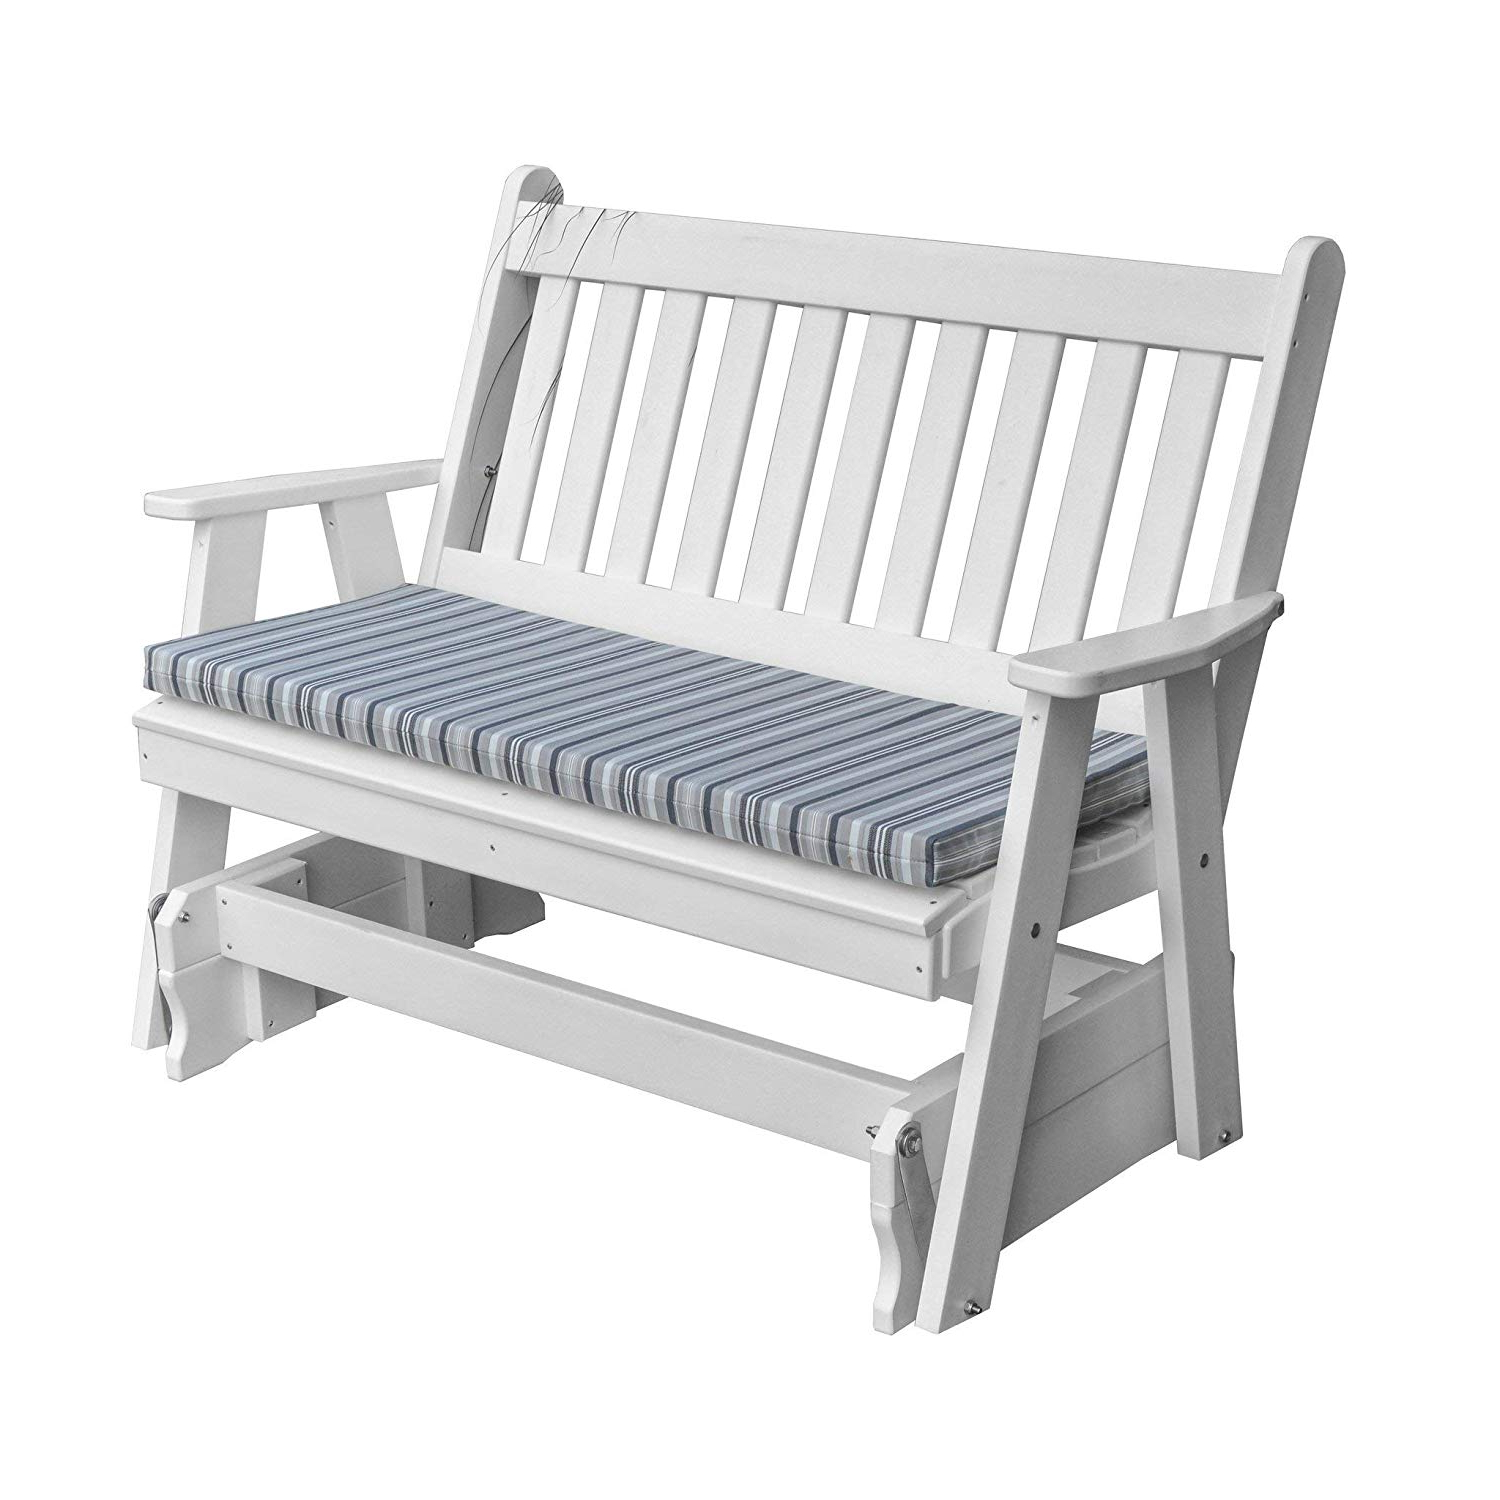 Amazon : Kunkle Holdings, Llc Outdoor 5 Foot Glider In With 2019 Traditional English Glider Benches (View 7 of 34)